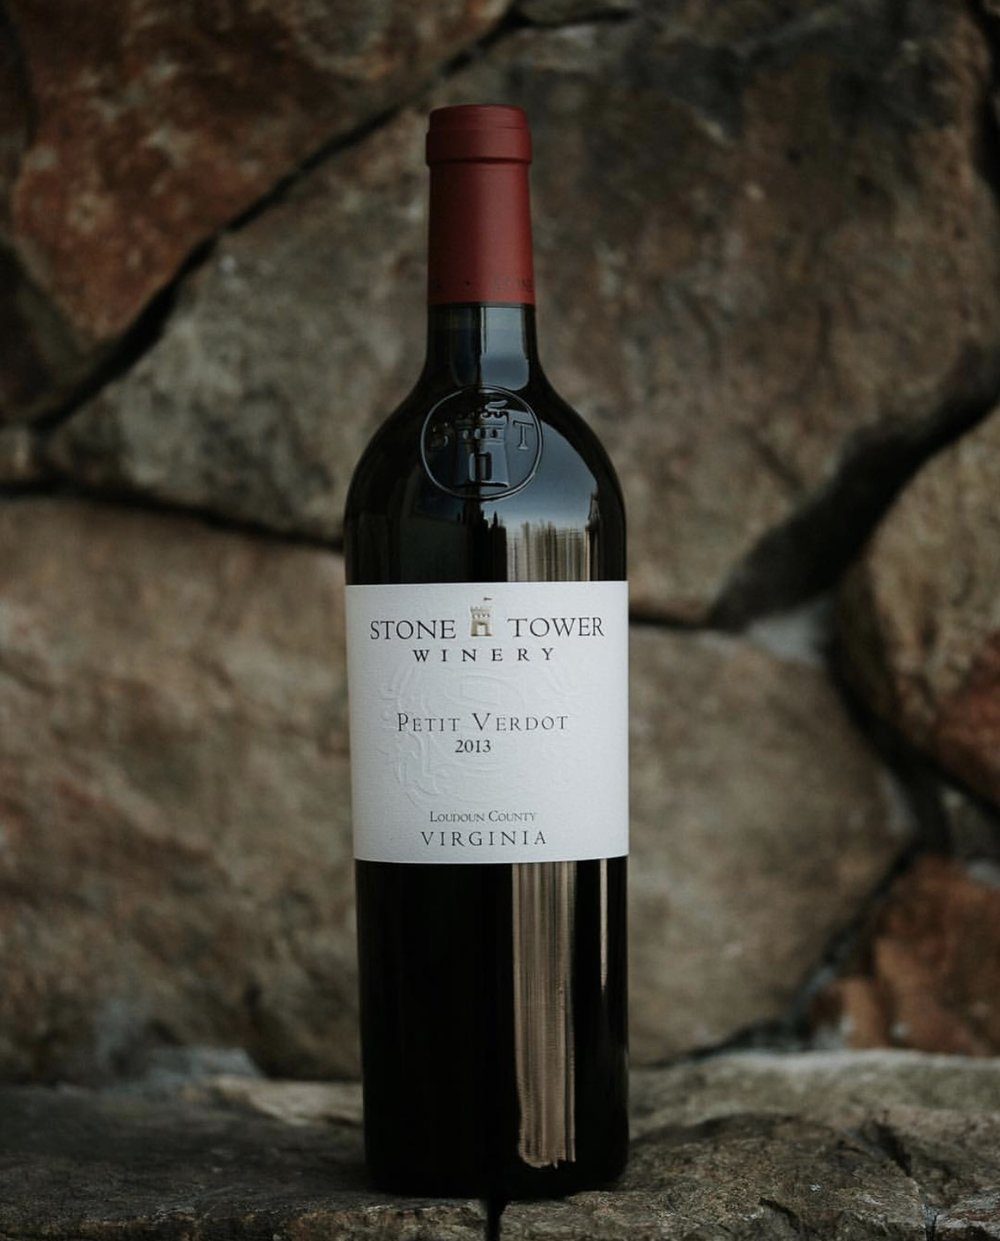 Today Only Purchase Our Libraried 2013 Petit Verdot - $89/bottle